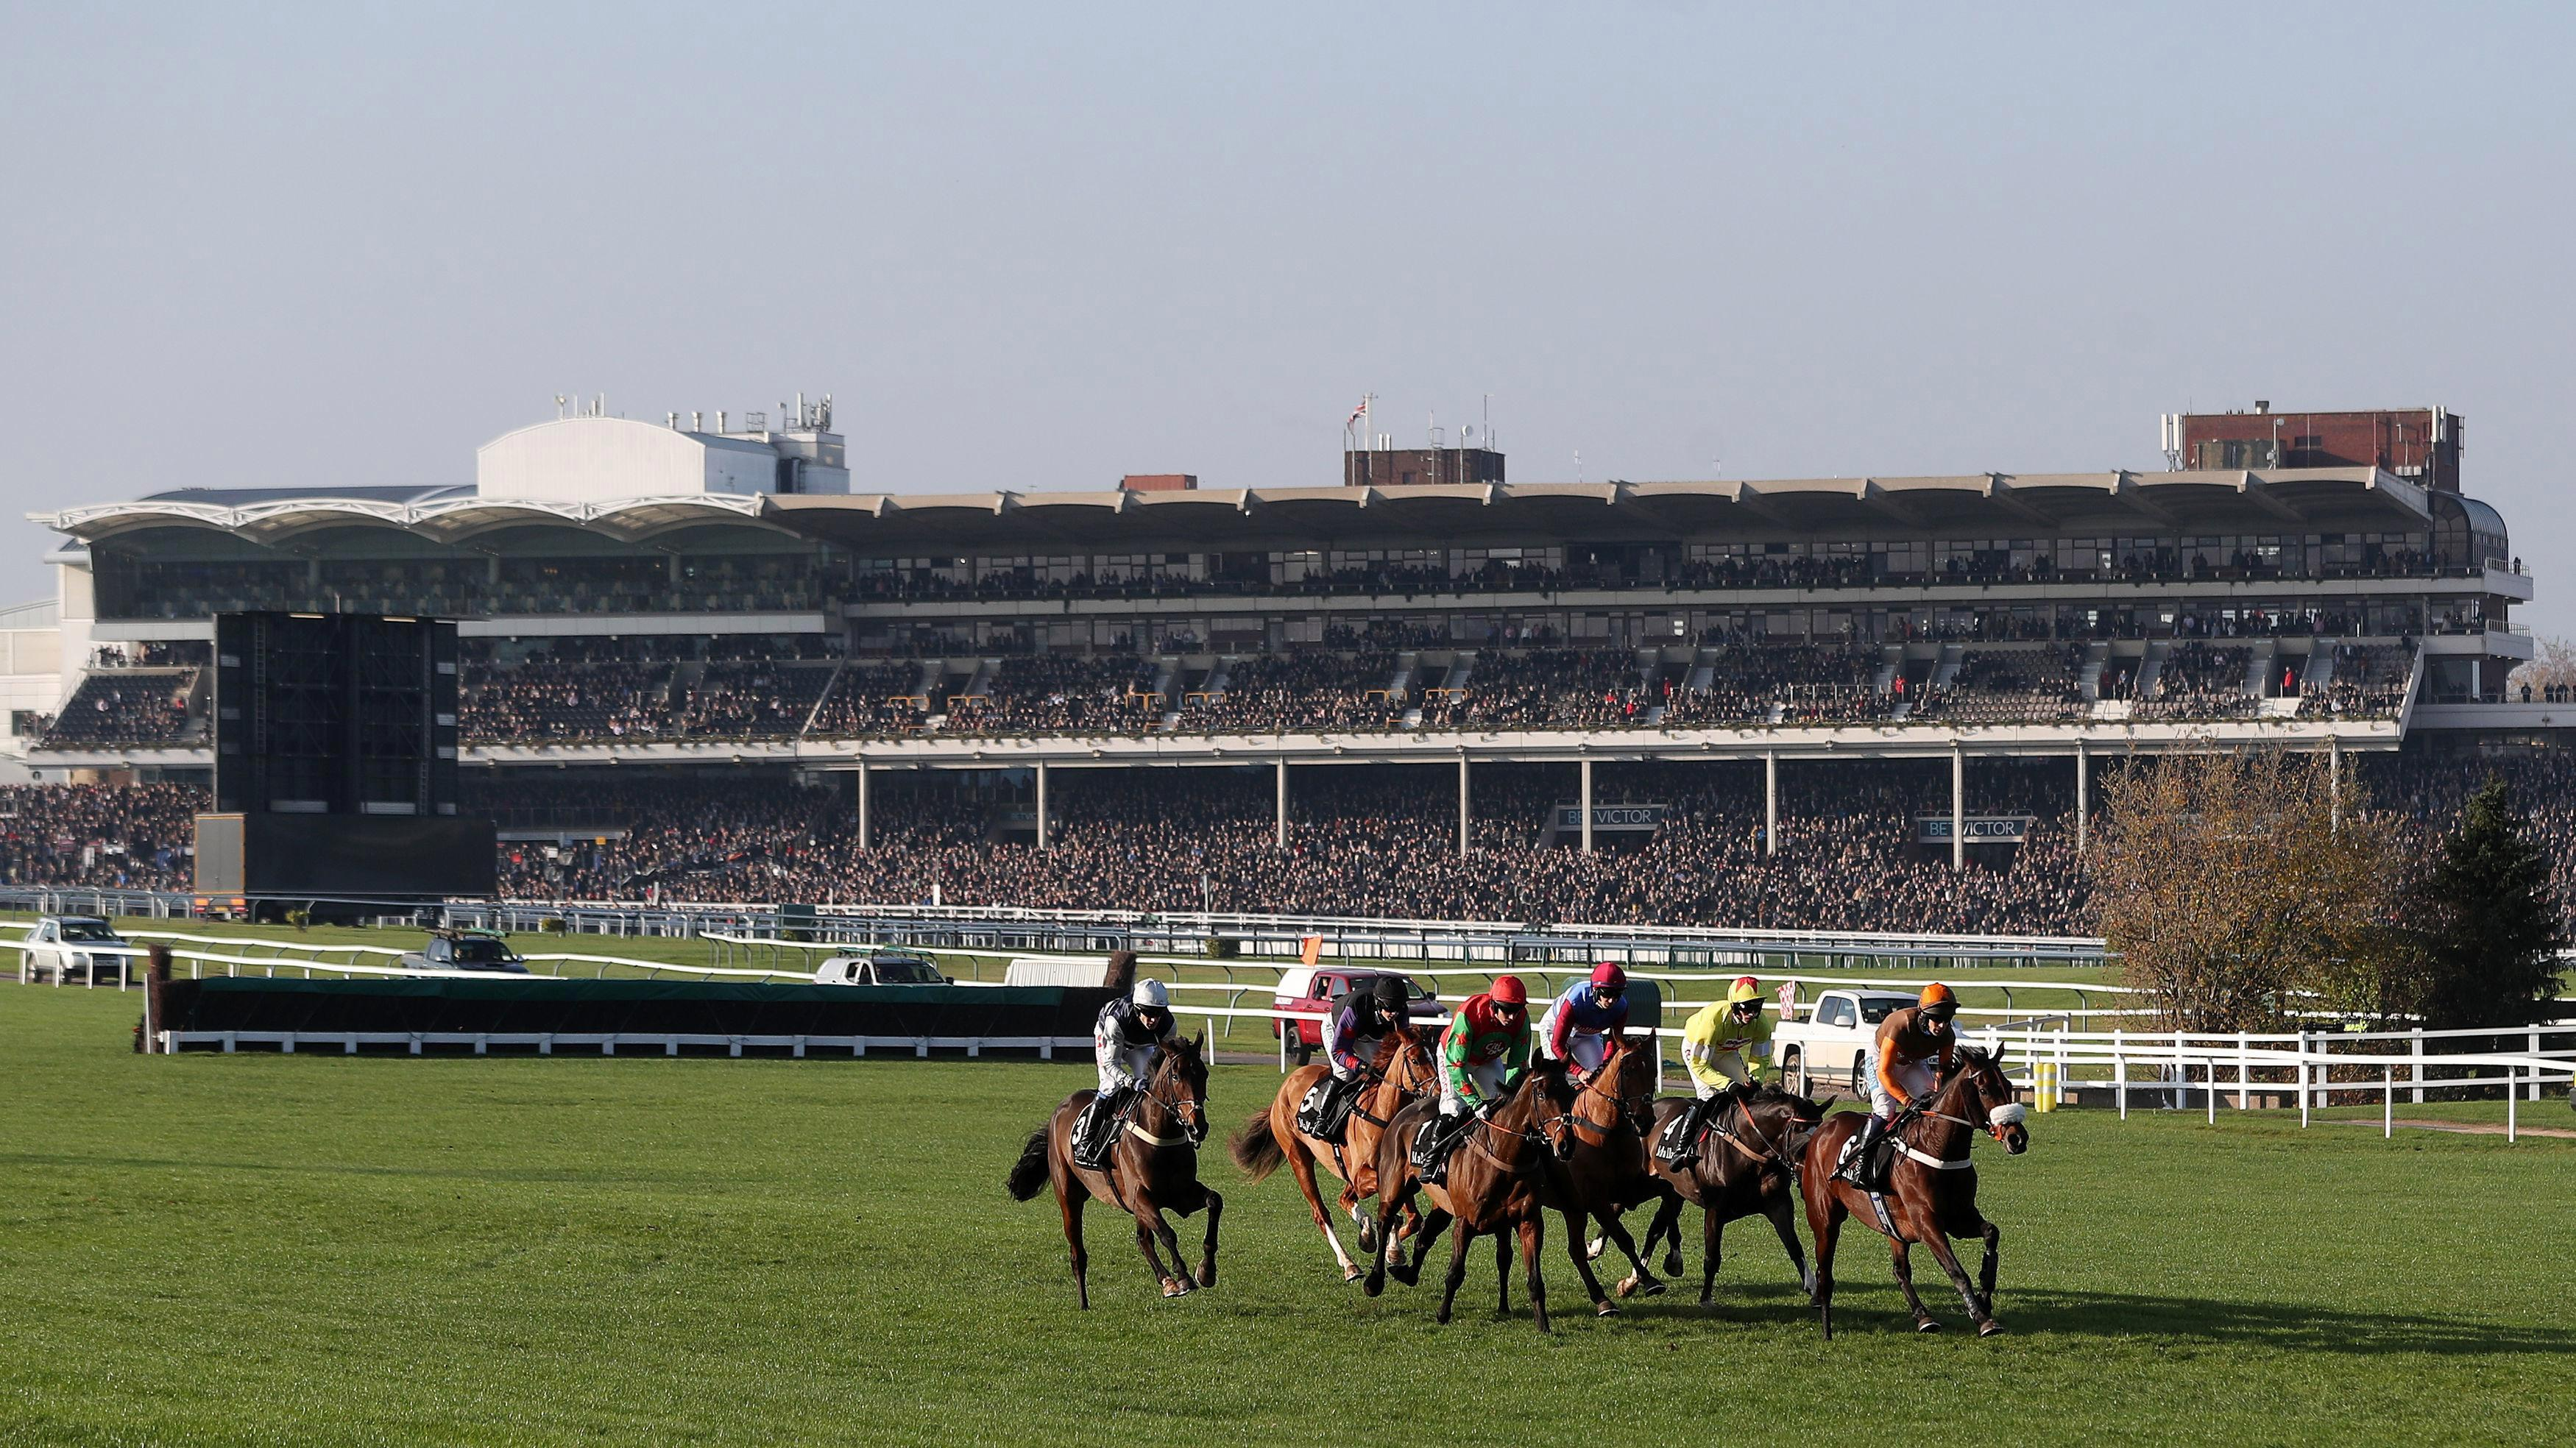 Cheltenham races tips, racecard, declarations and preview for the International meeting live on ITV and Racing TV this Friday